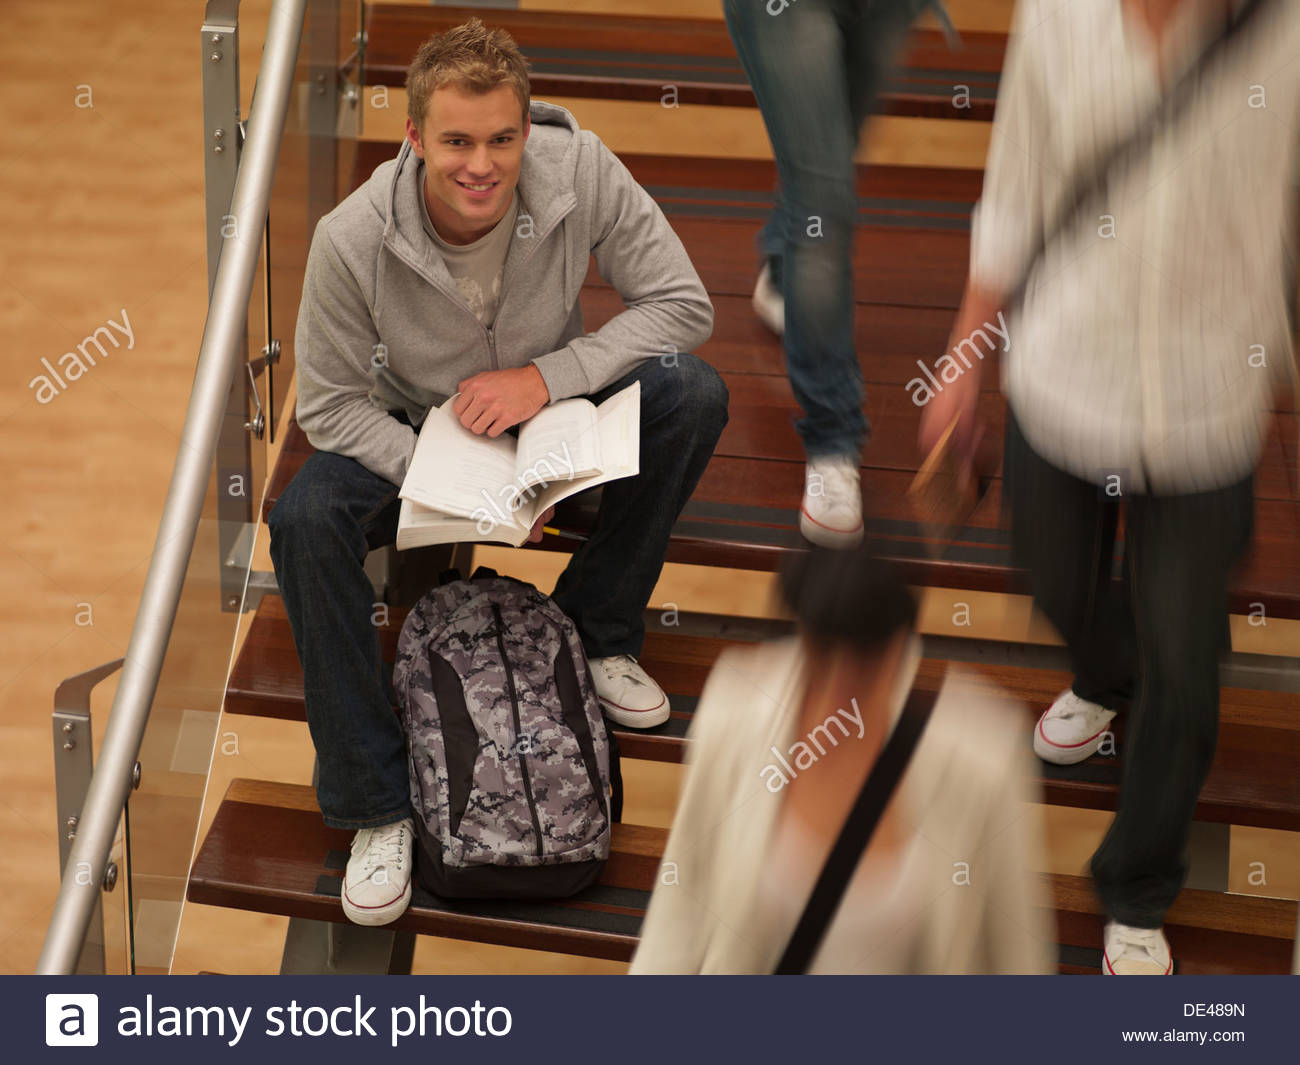 College students sitting on staircase - Stock Image